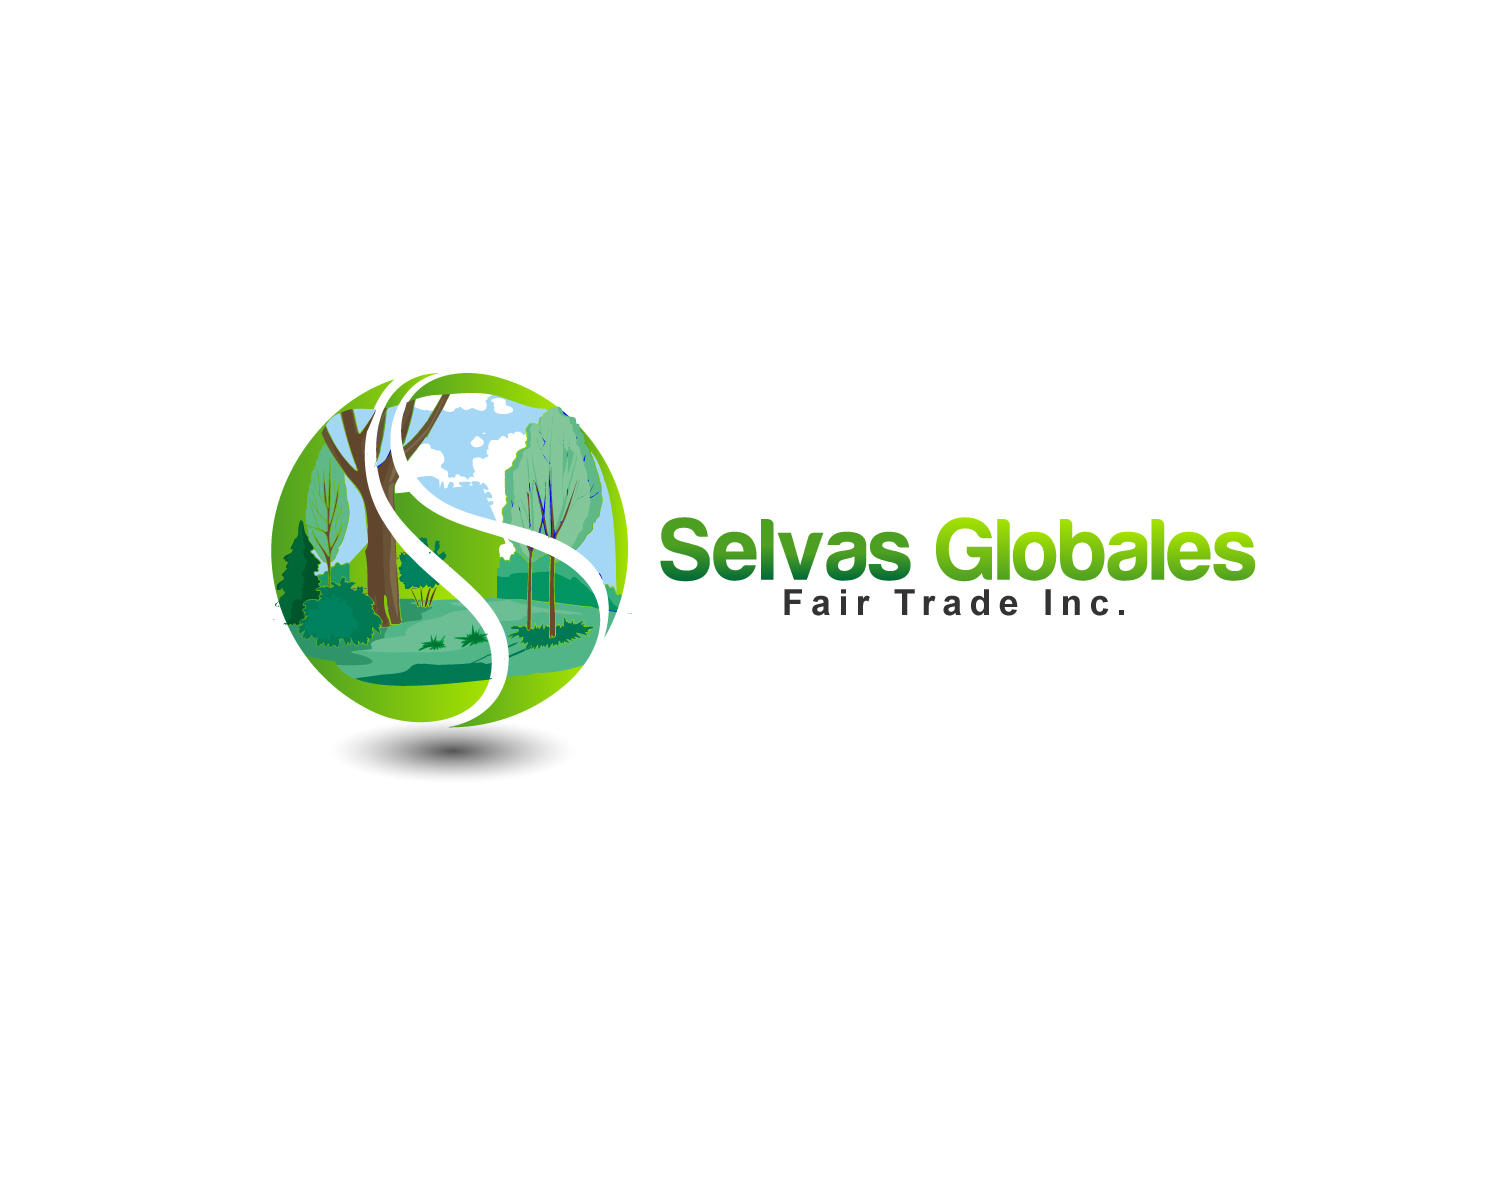 Logo Design by Jagdeep Singh - Entry No. 98 in the Logo Design Contest Captivating Logo Design for Selvas Globales Fair Trade Inc..